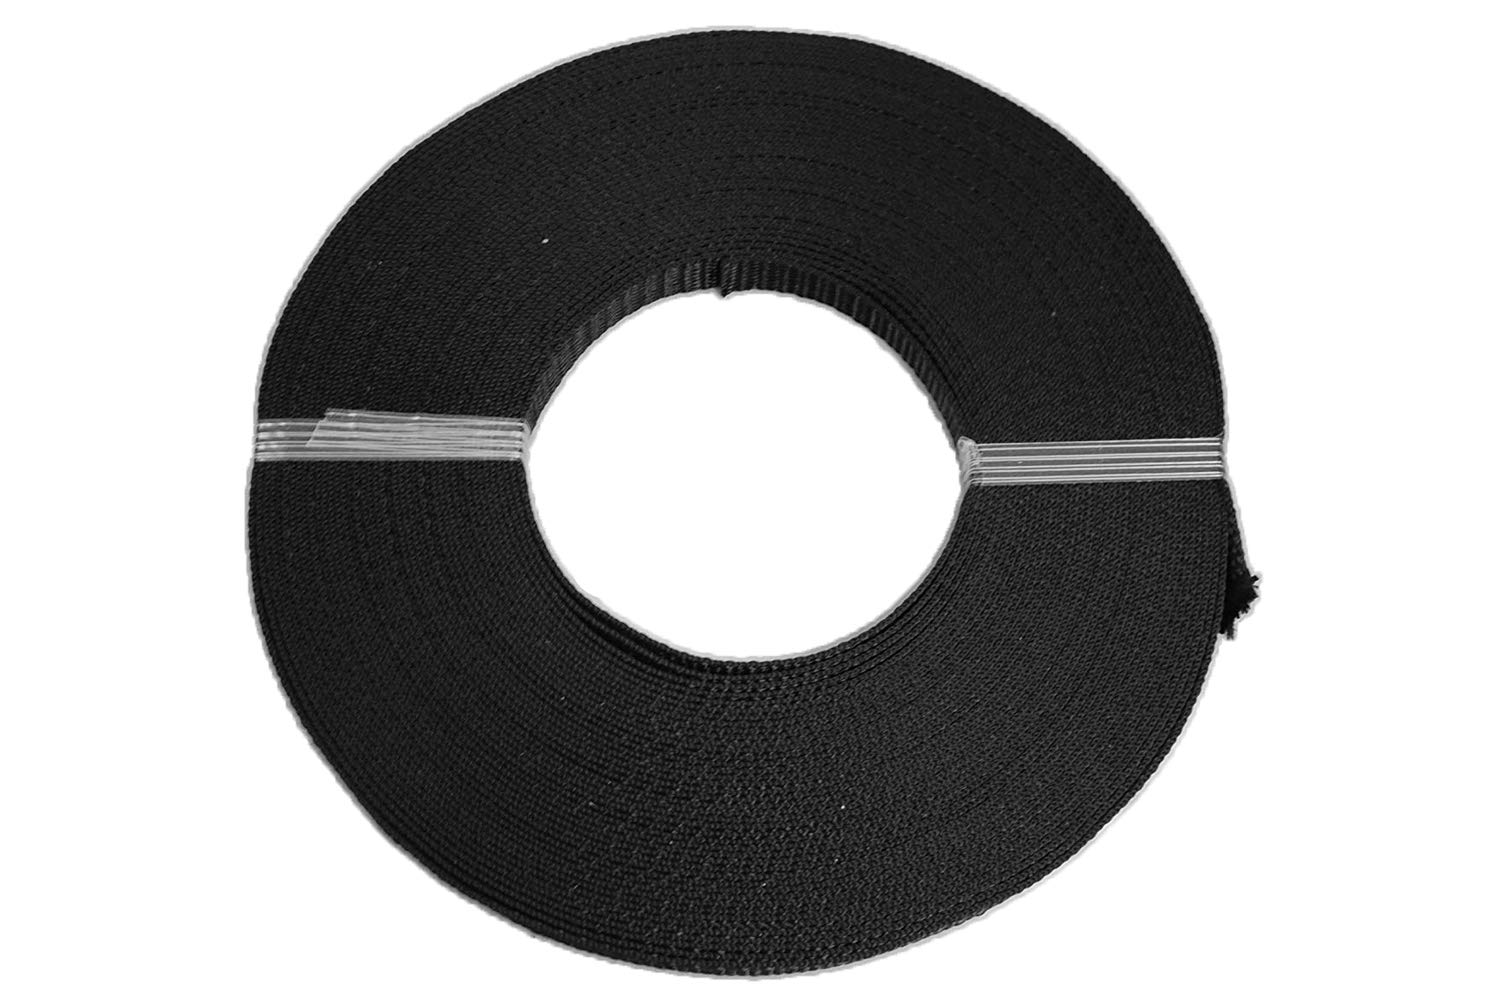 Replacement Strap FAFCO Solar Pool Heater - 100 ft by FAFCO Sunsaver, Sunsaver ST, Sungrabber, Revolution